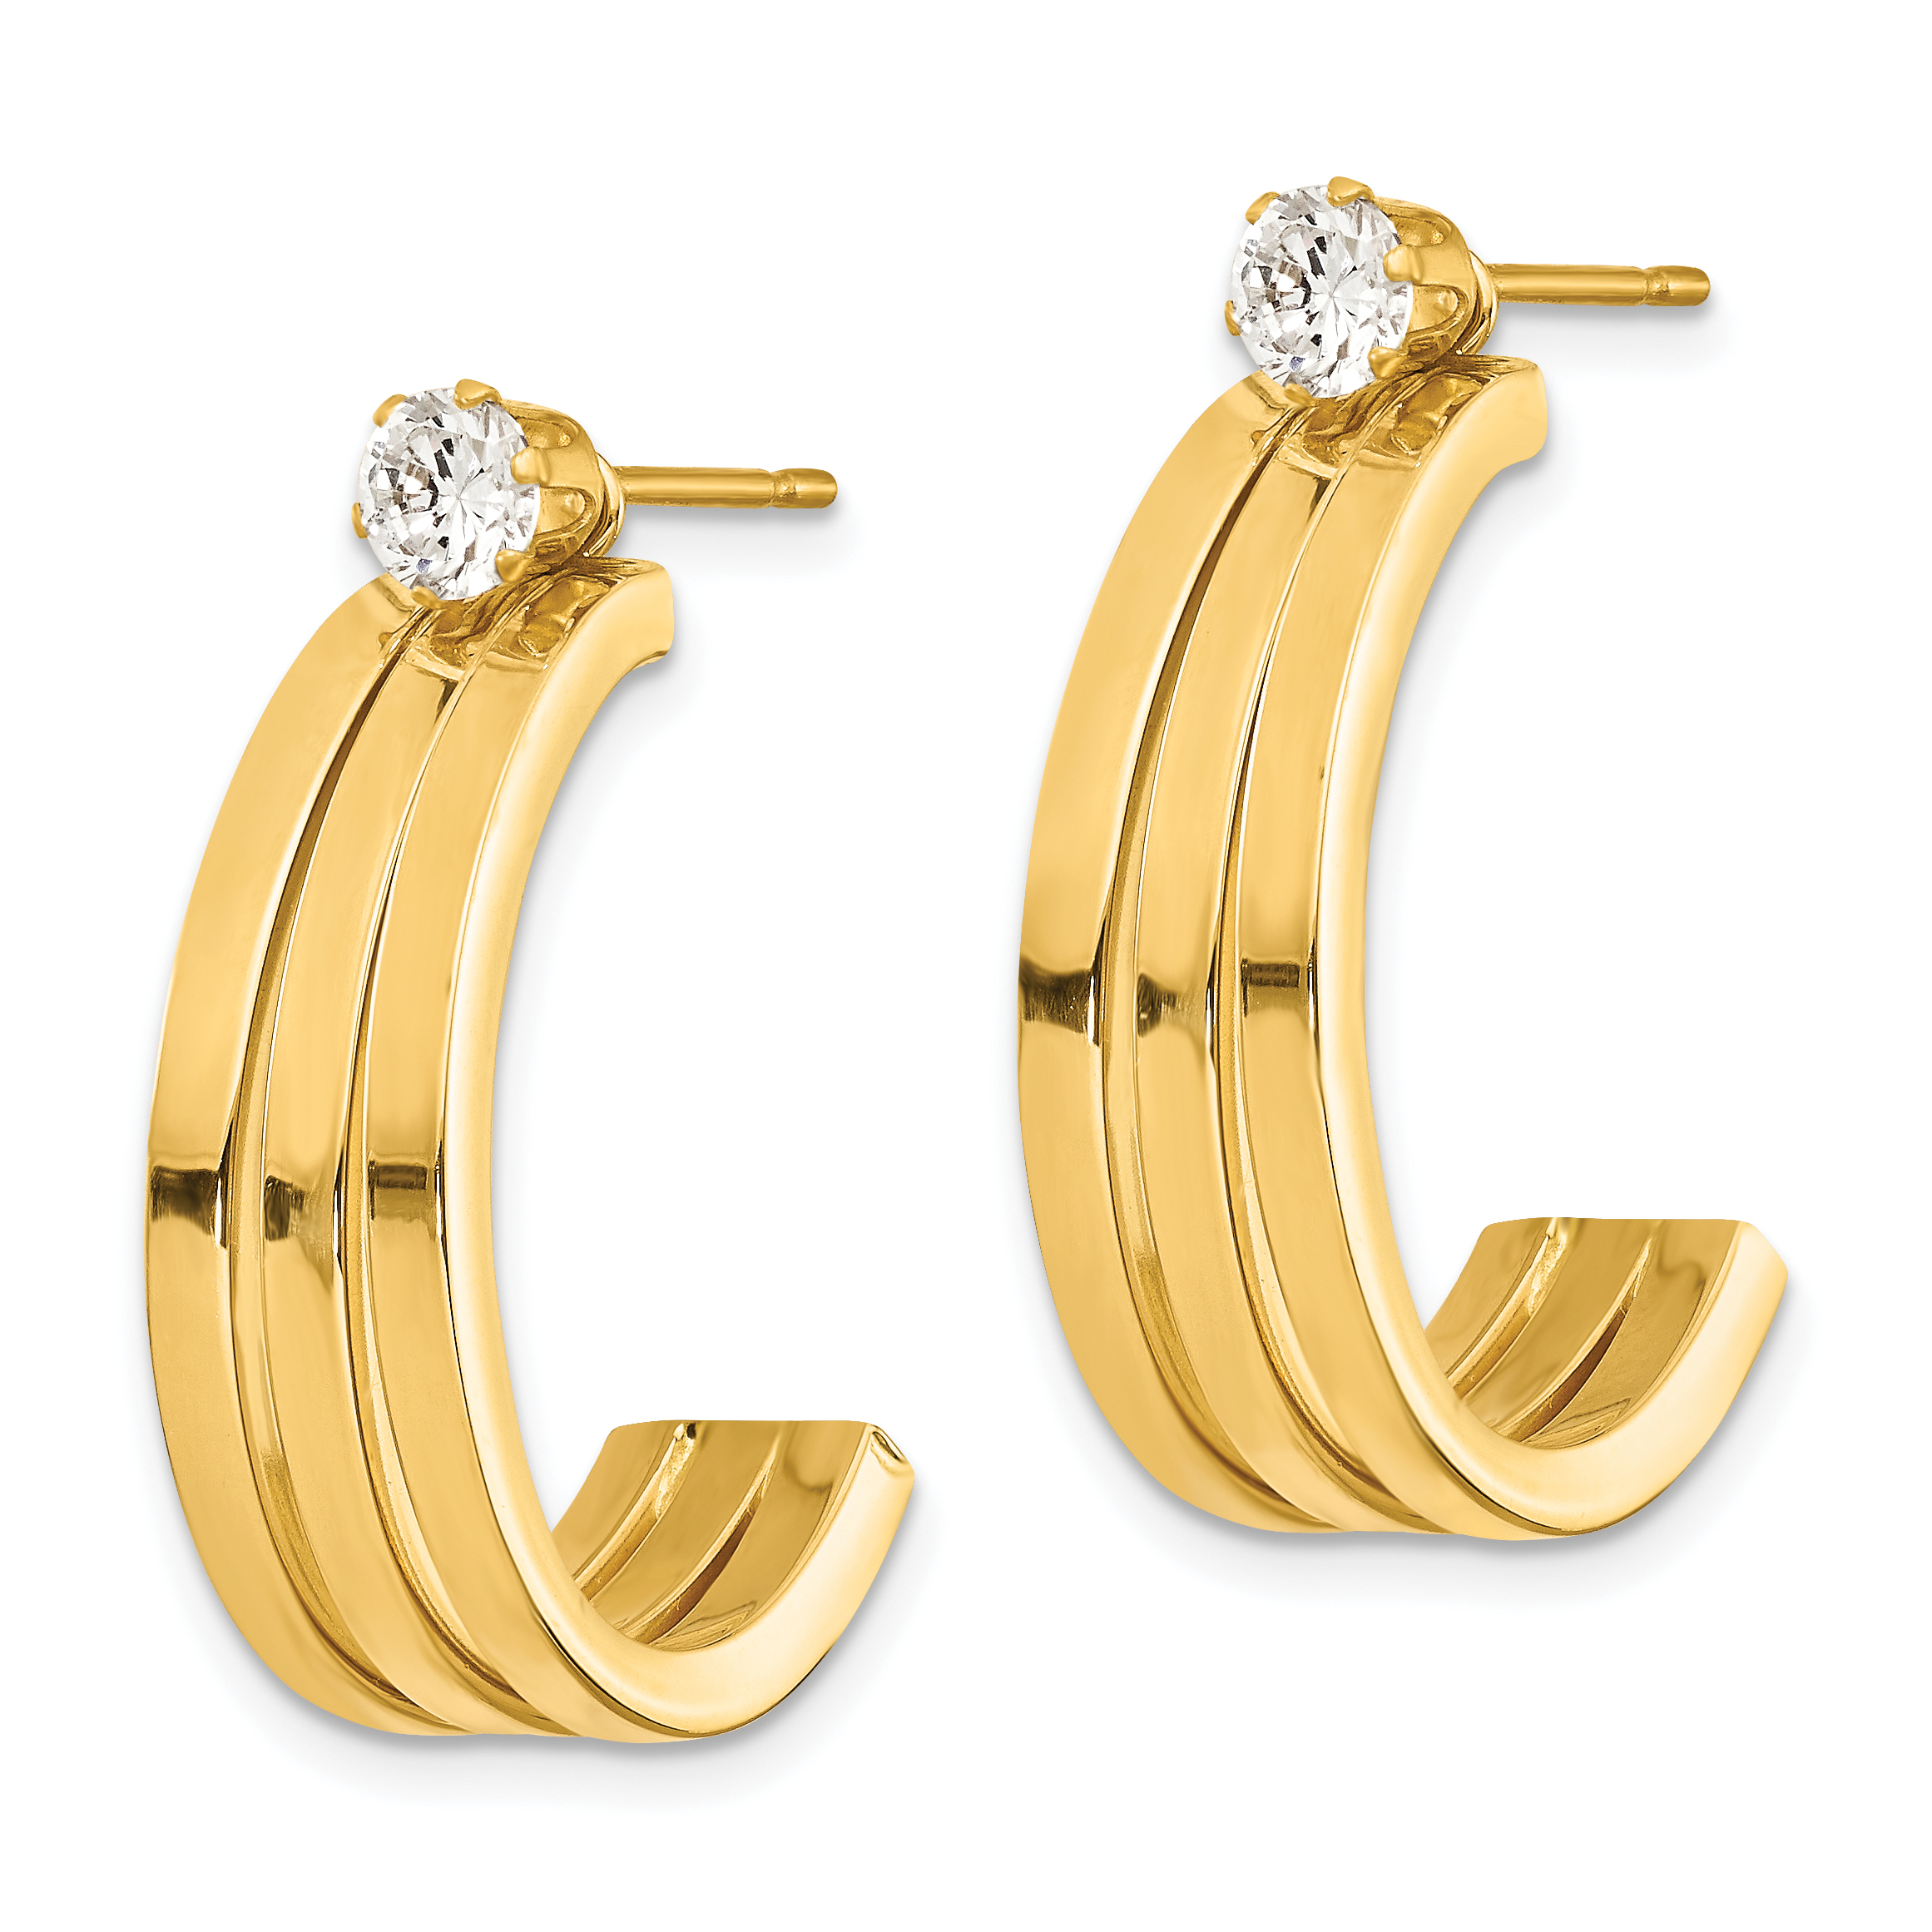 14k White Gold Polished J Hoop with 4mm CZ Stud Earring Jackets